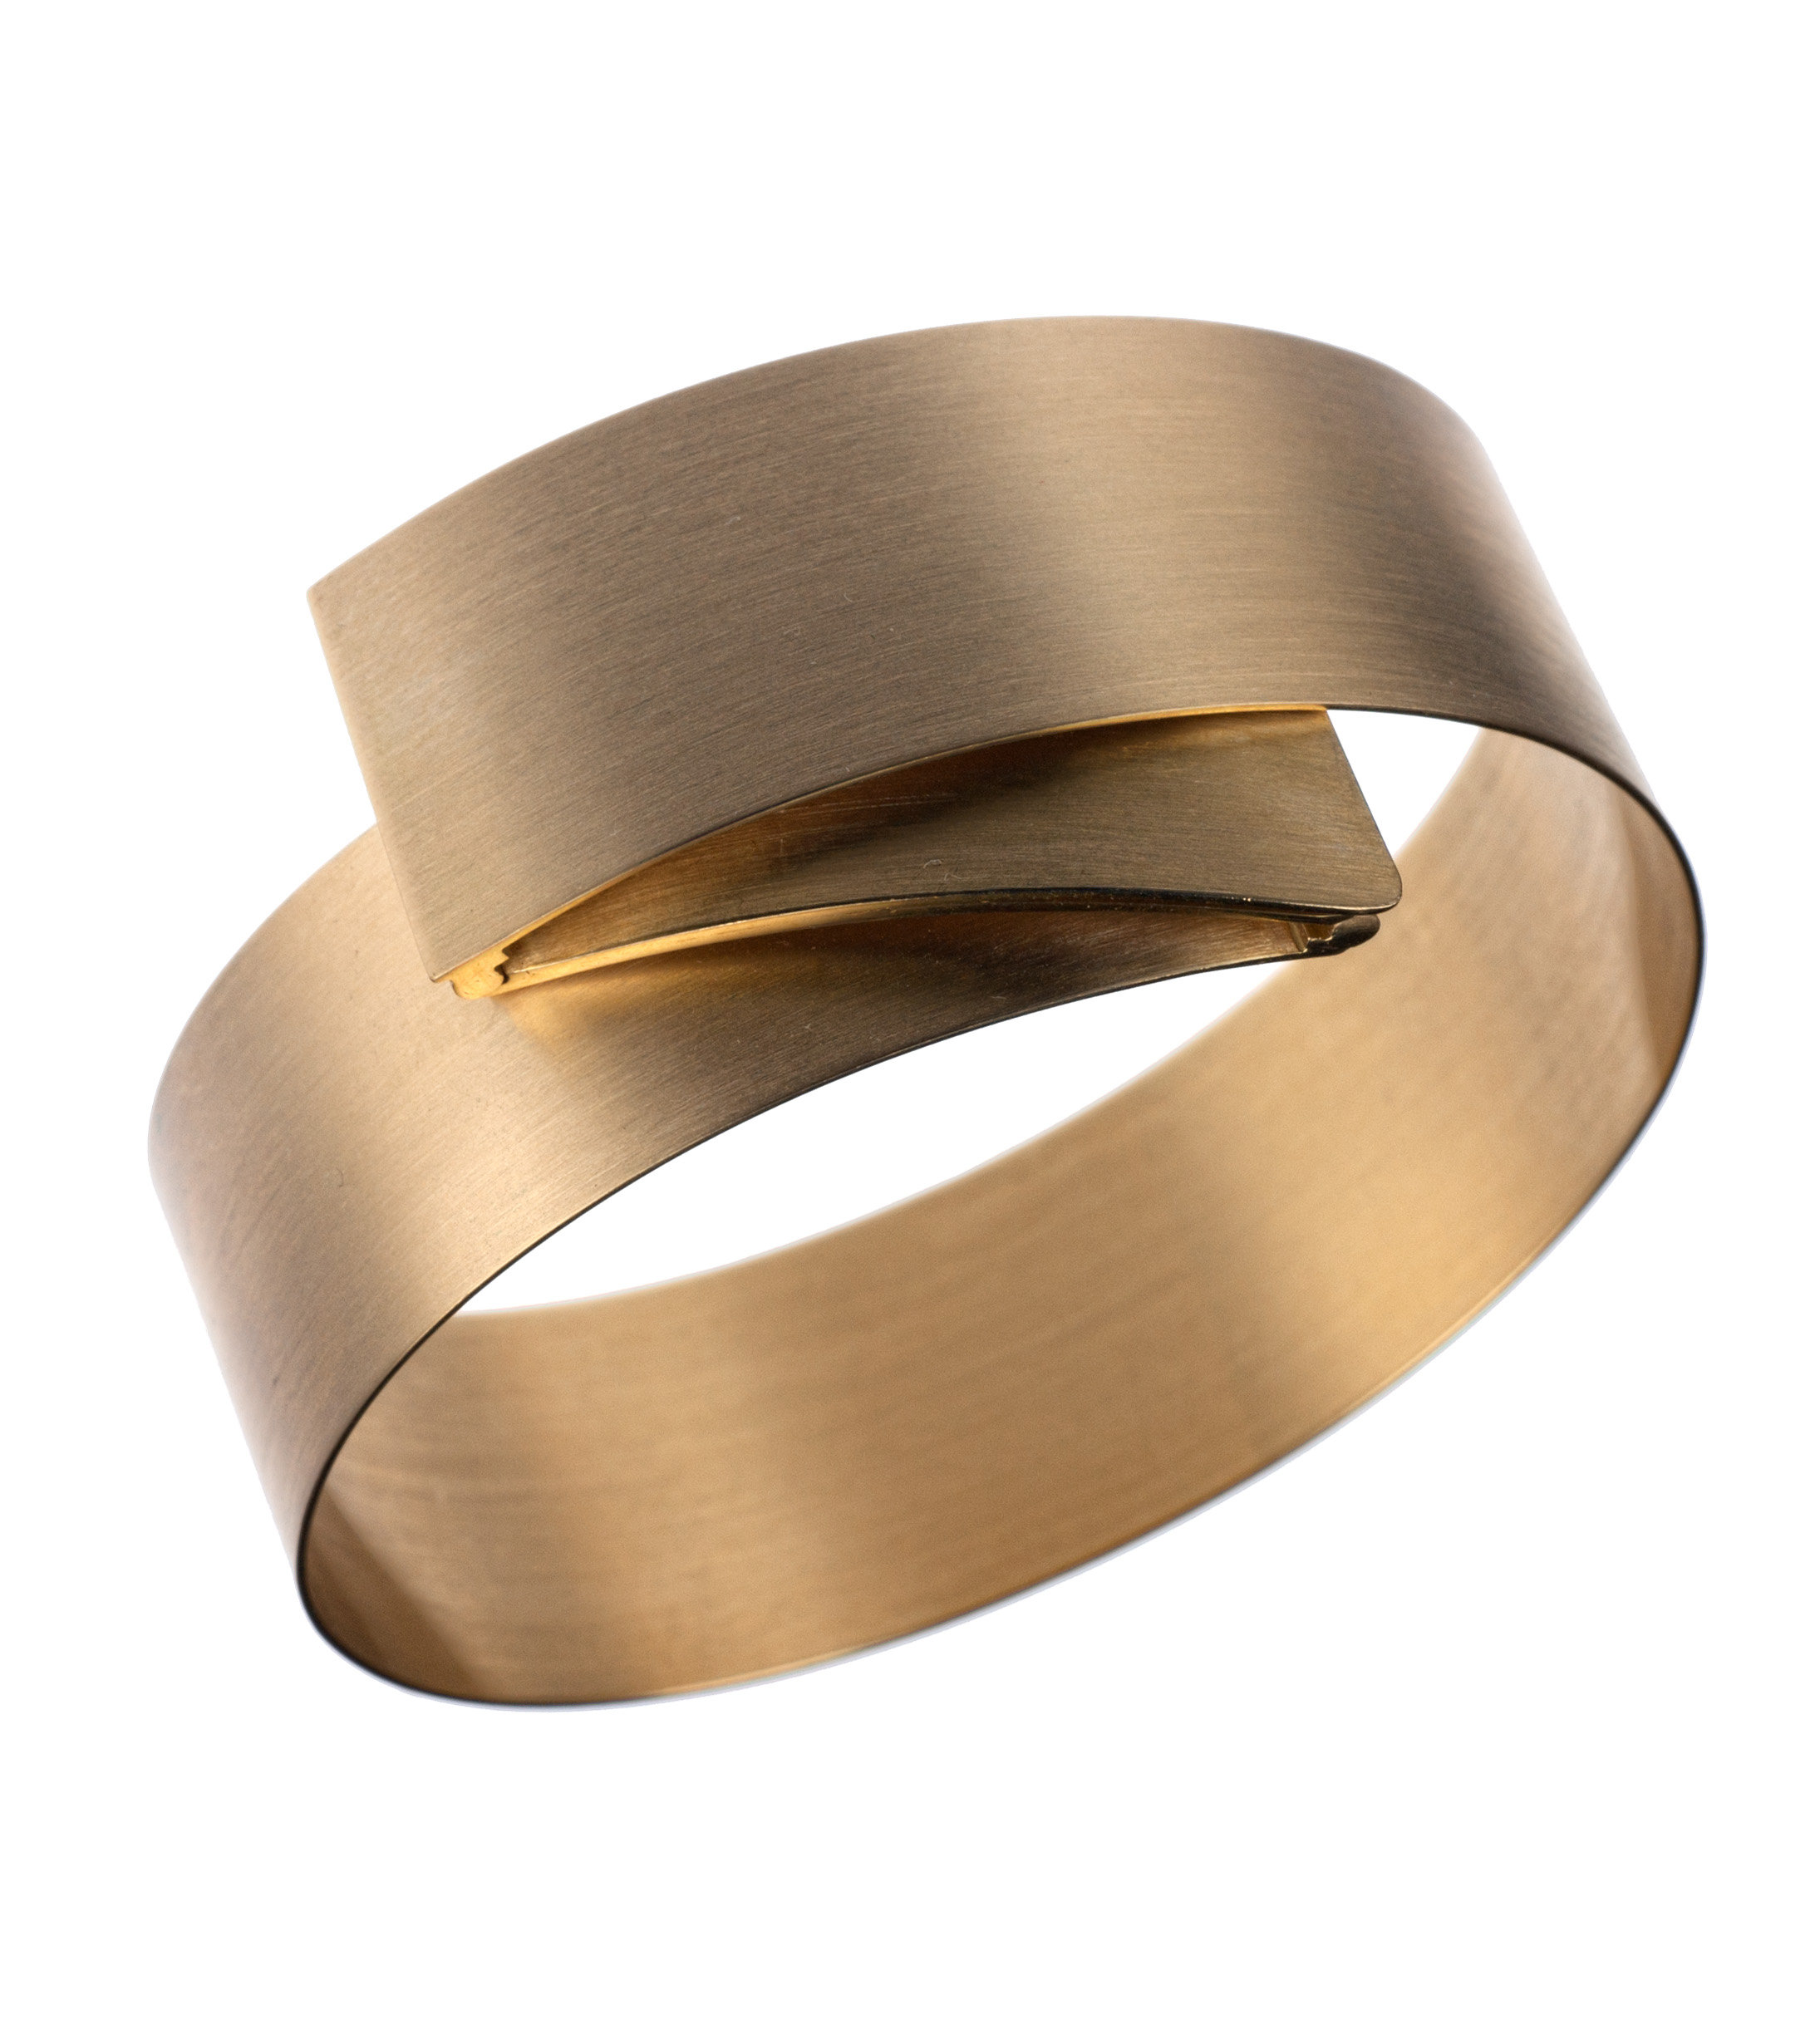 Isabelle Fa folding bangle bracelet in 18-karat yellow gold